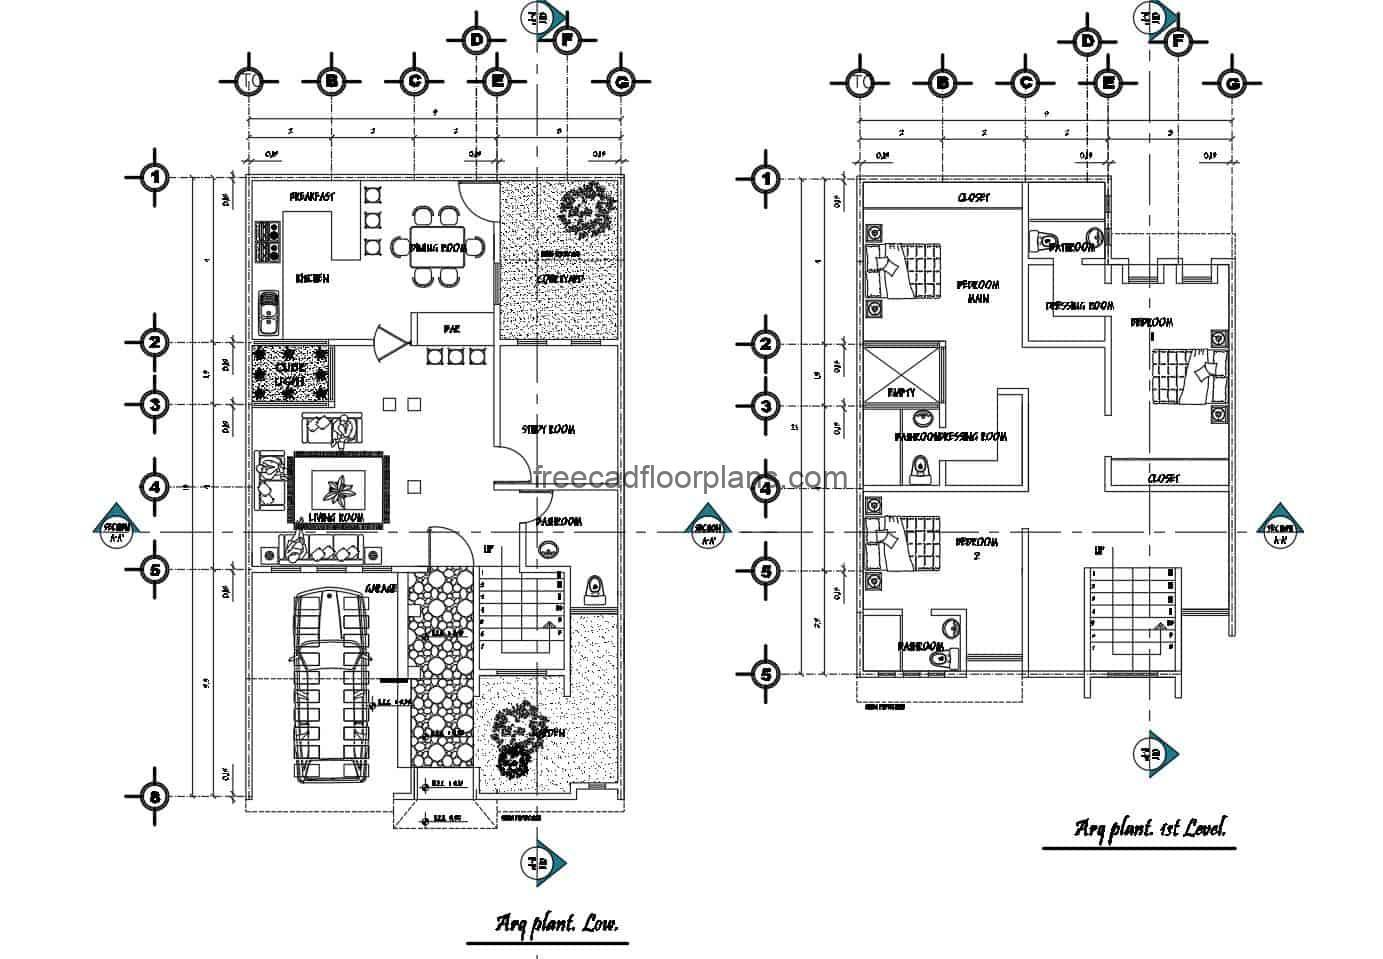 Two-level single residence plans, free to download in Autocad DWG format, three-bedroom residence with private bathrooms